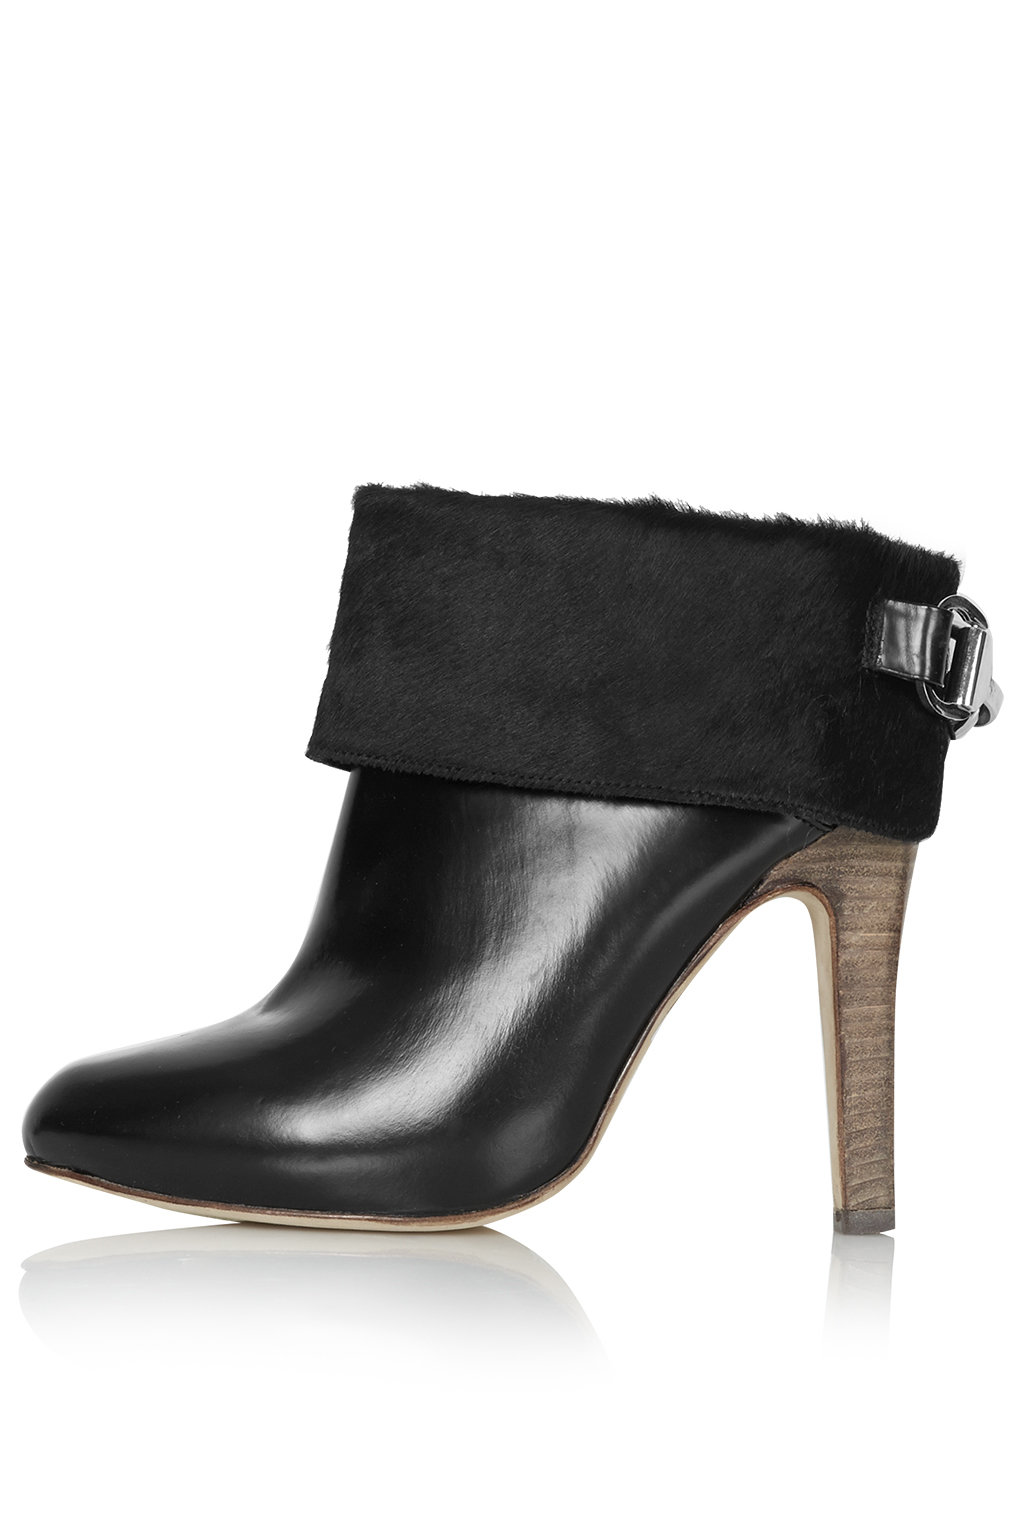 Topshop - Chaussures(170 €)